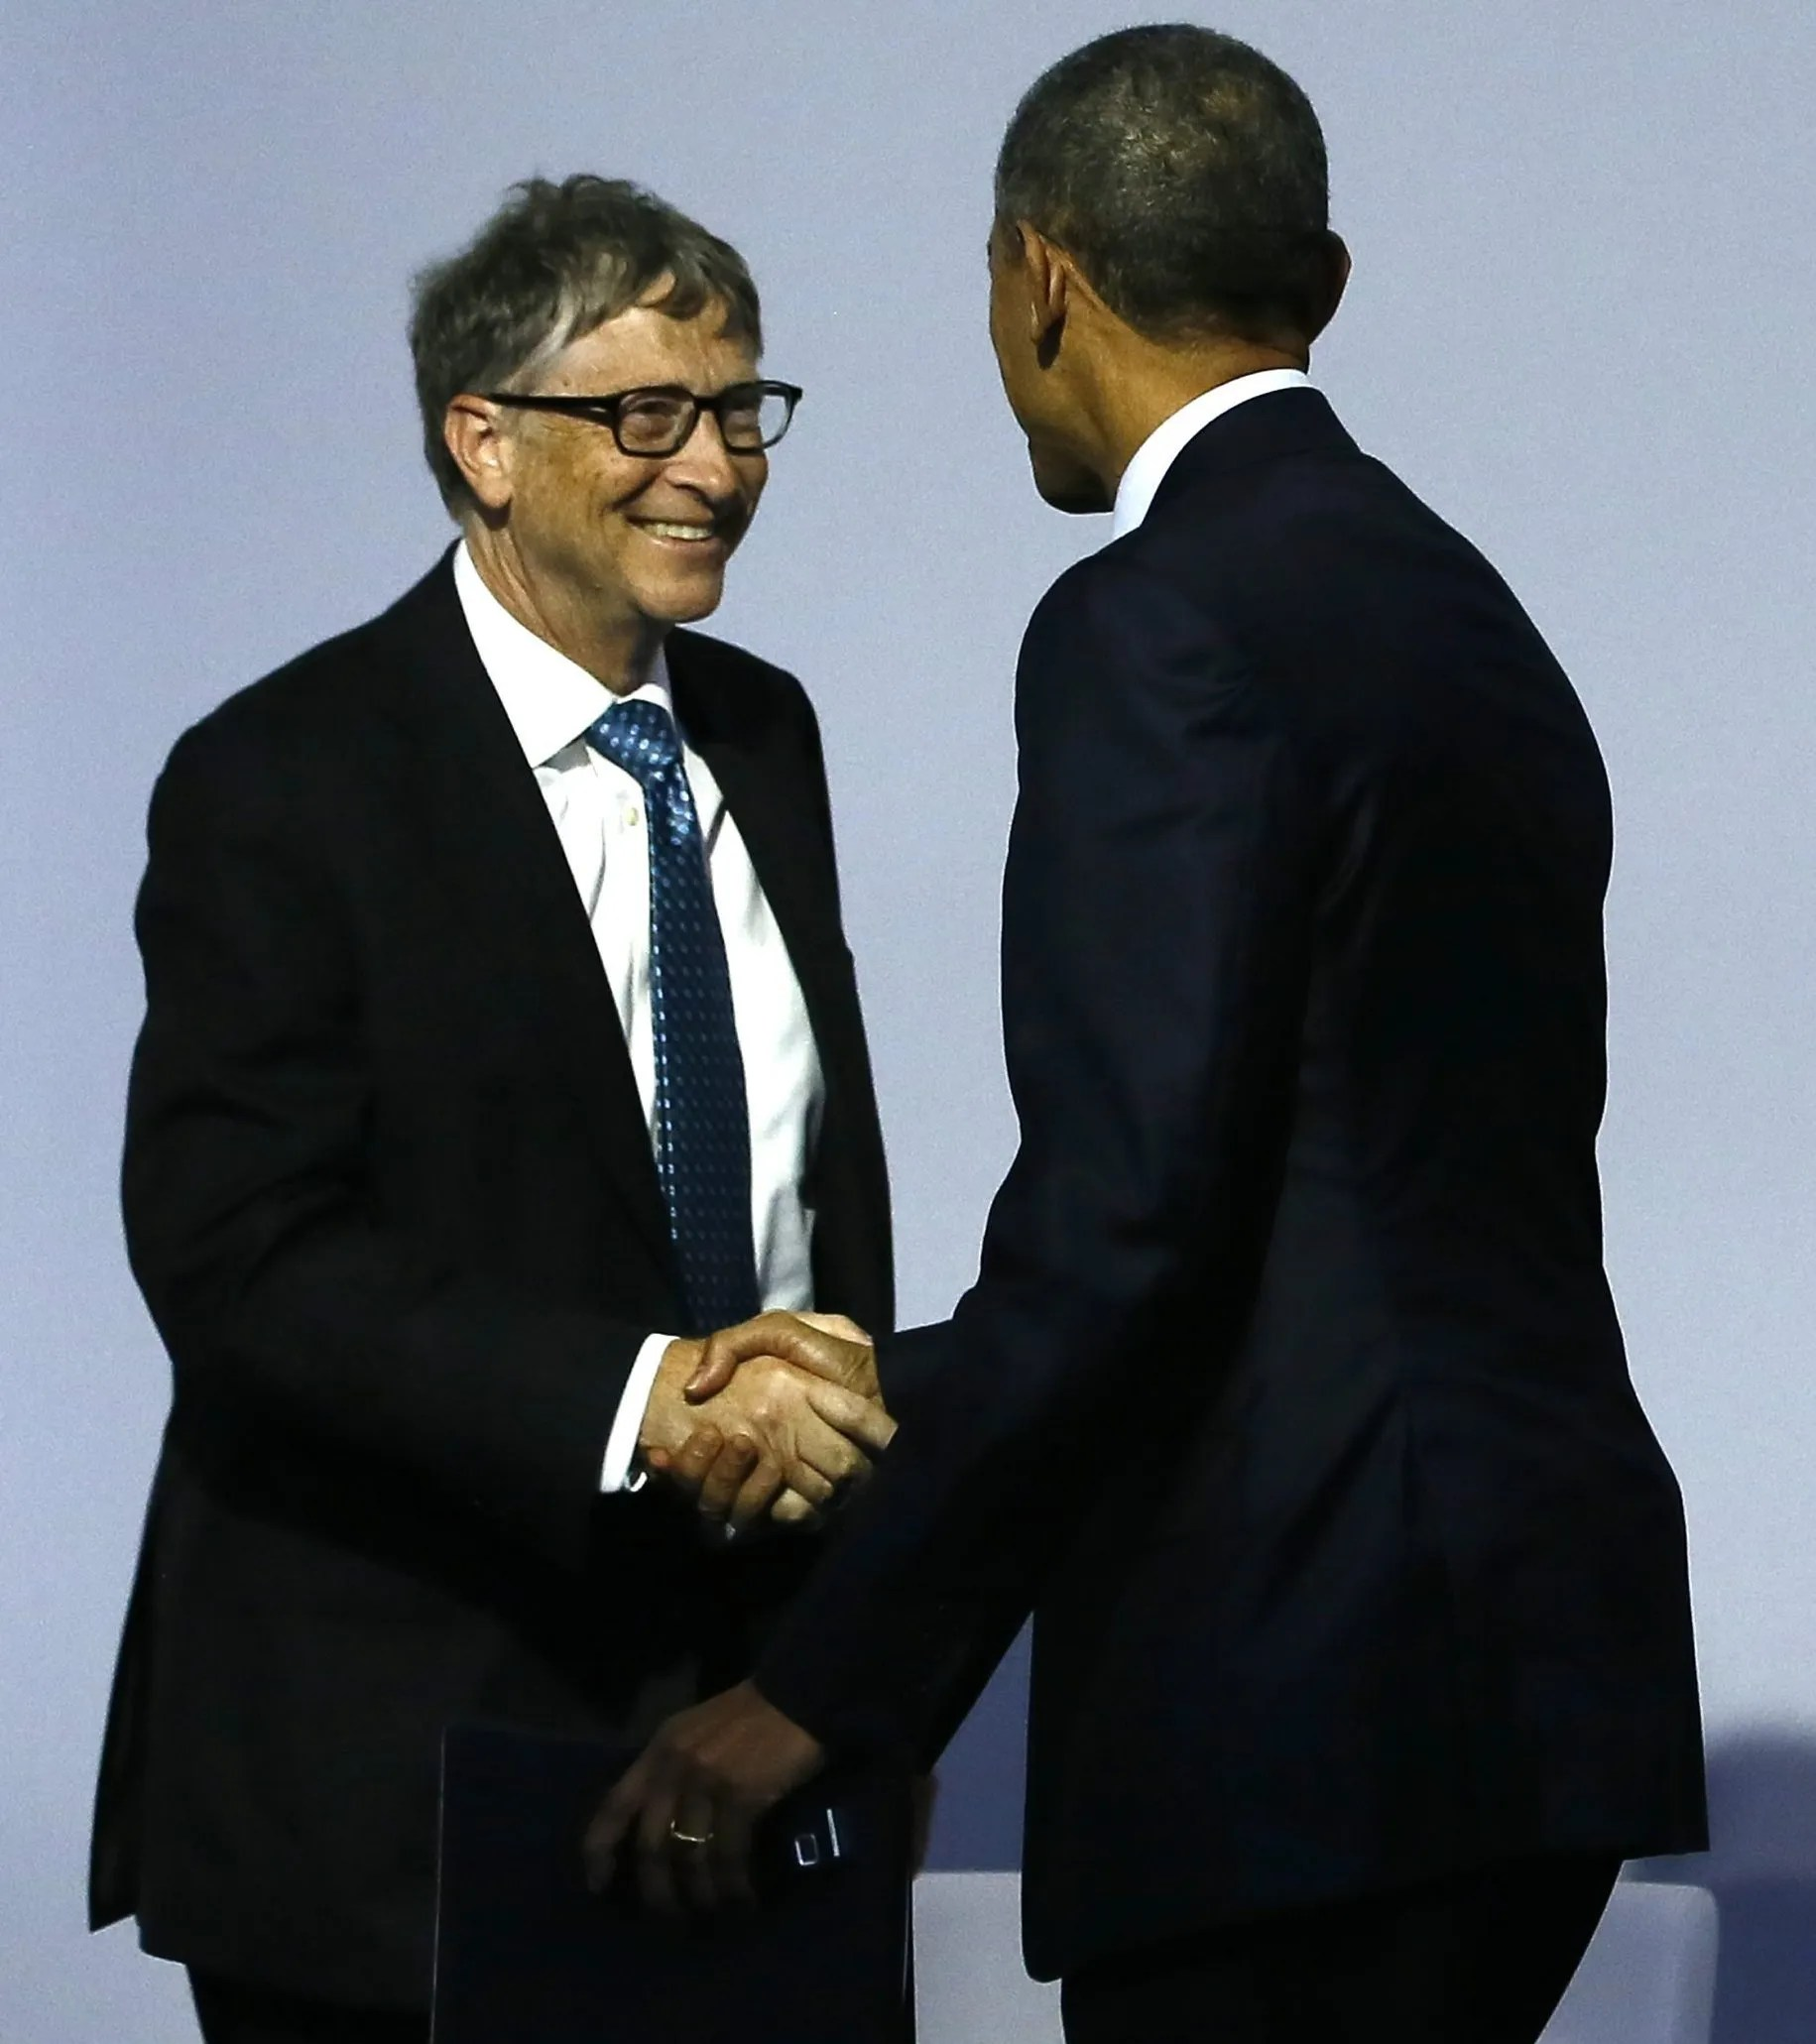 Chasing an \u0027energy miracle,\u0027 Bill Gates rallies billionaires to